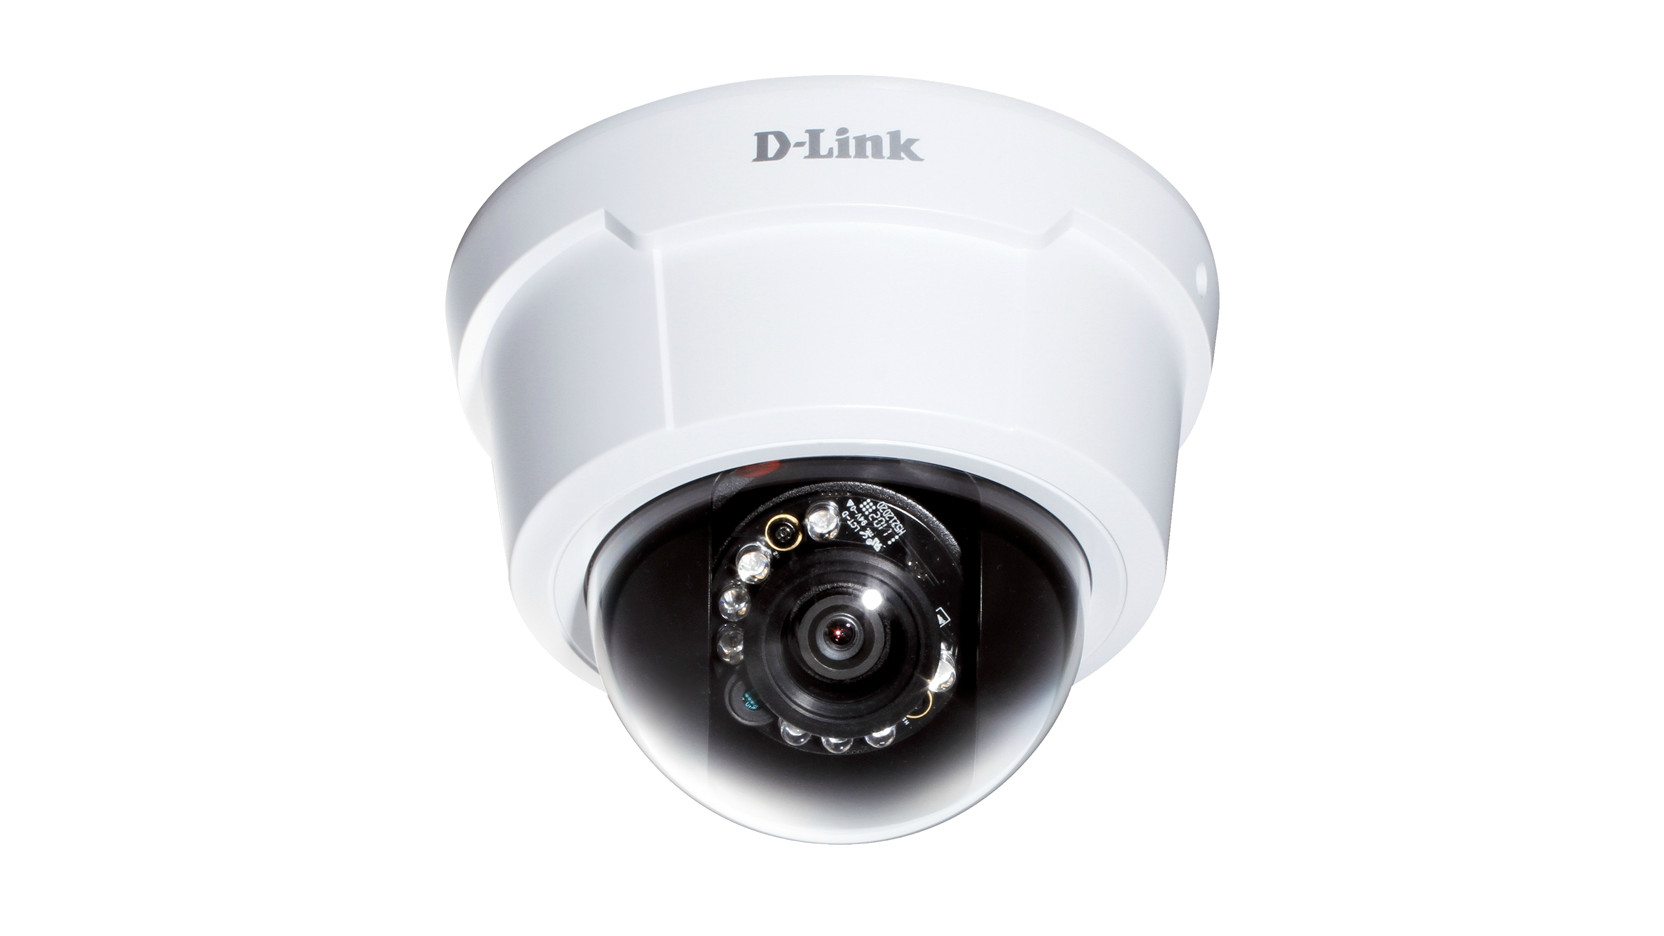 D-Link DCS-6113 Full HD Fixed Dome IP Network Dome Camera